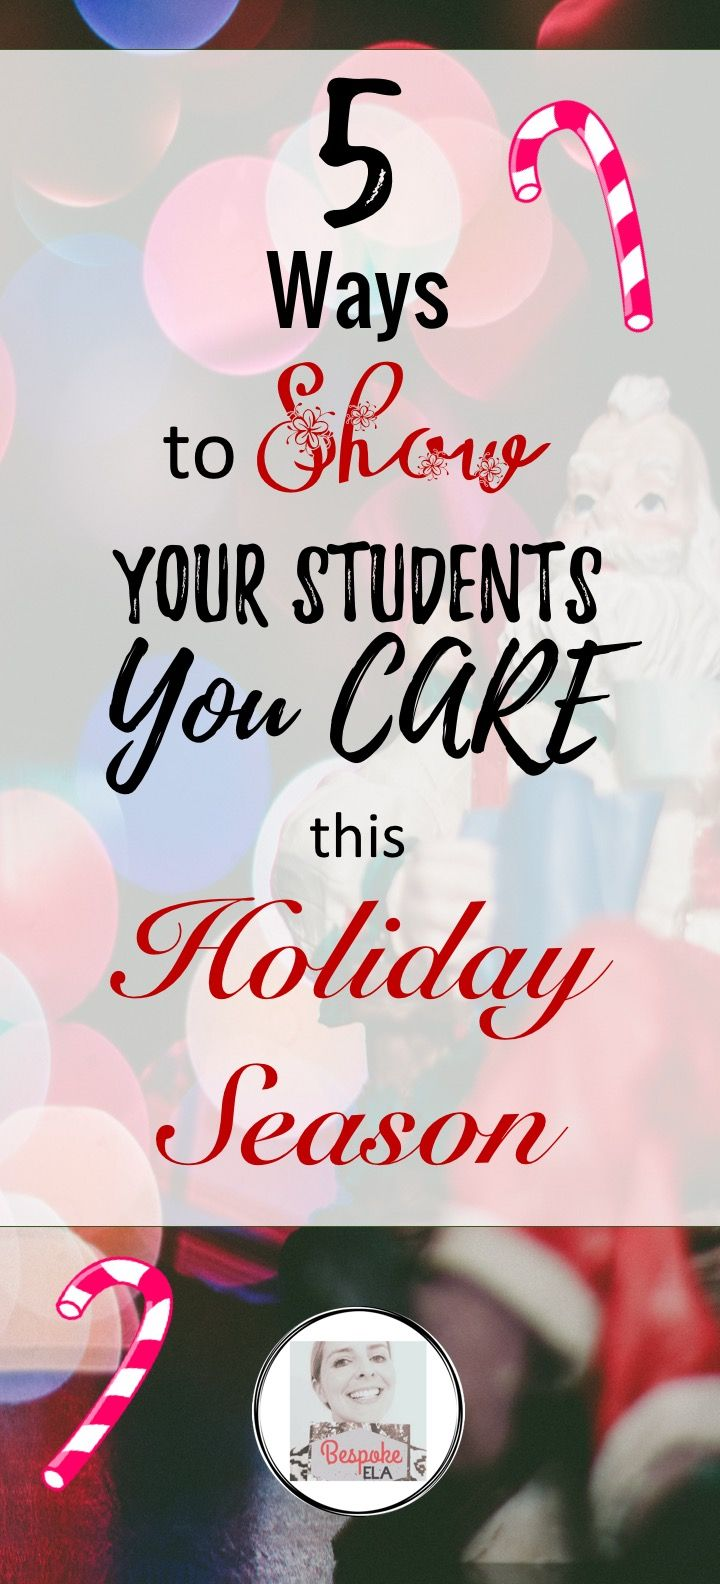 The holidays are a great time to show your students you care!  In this blog article by Bespoke ELA, you will find five ideas for how to do this in elementary, middle, and high school.